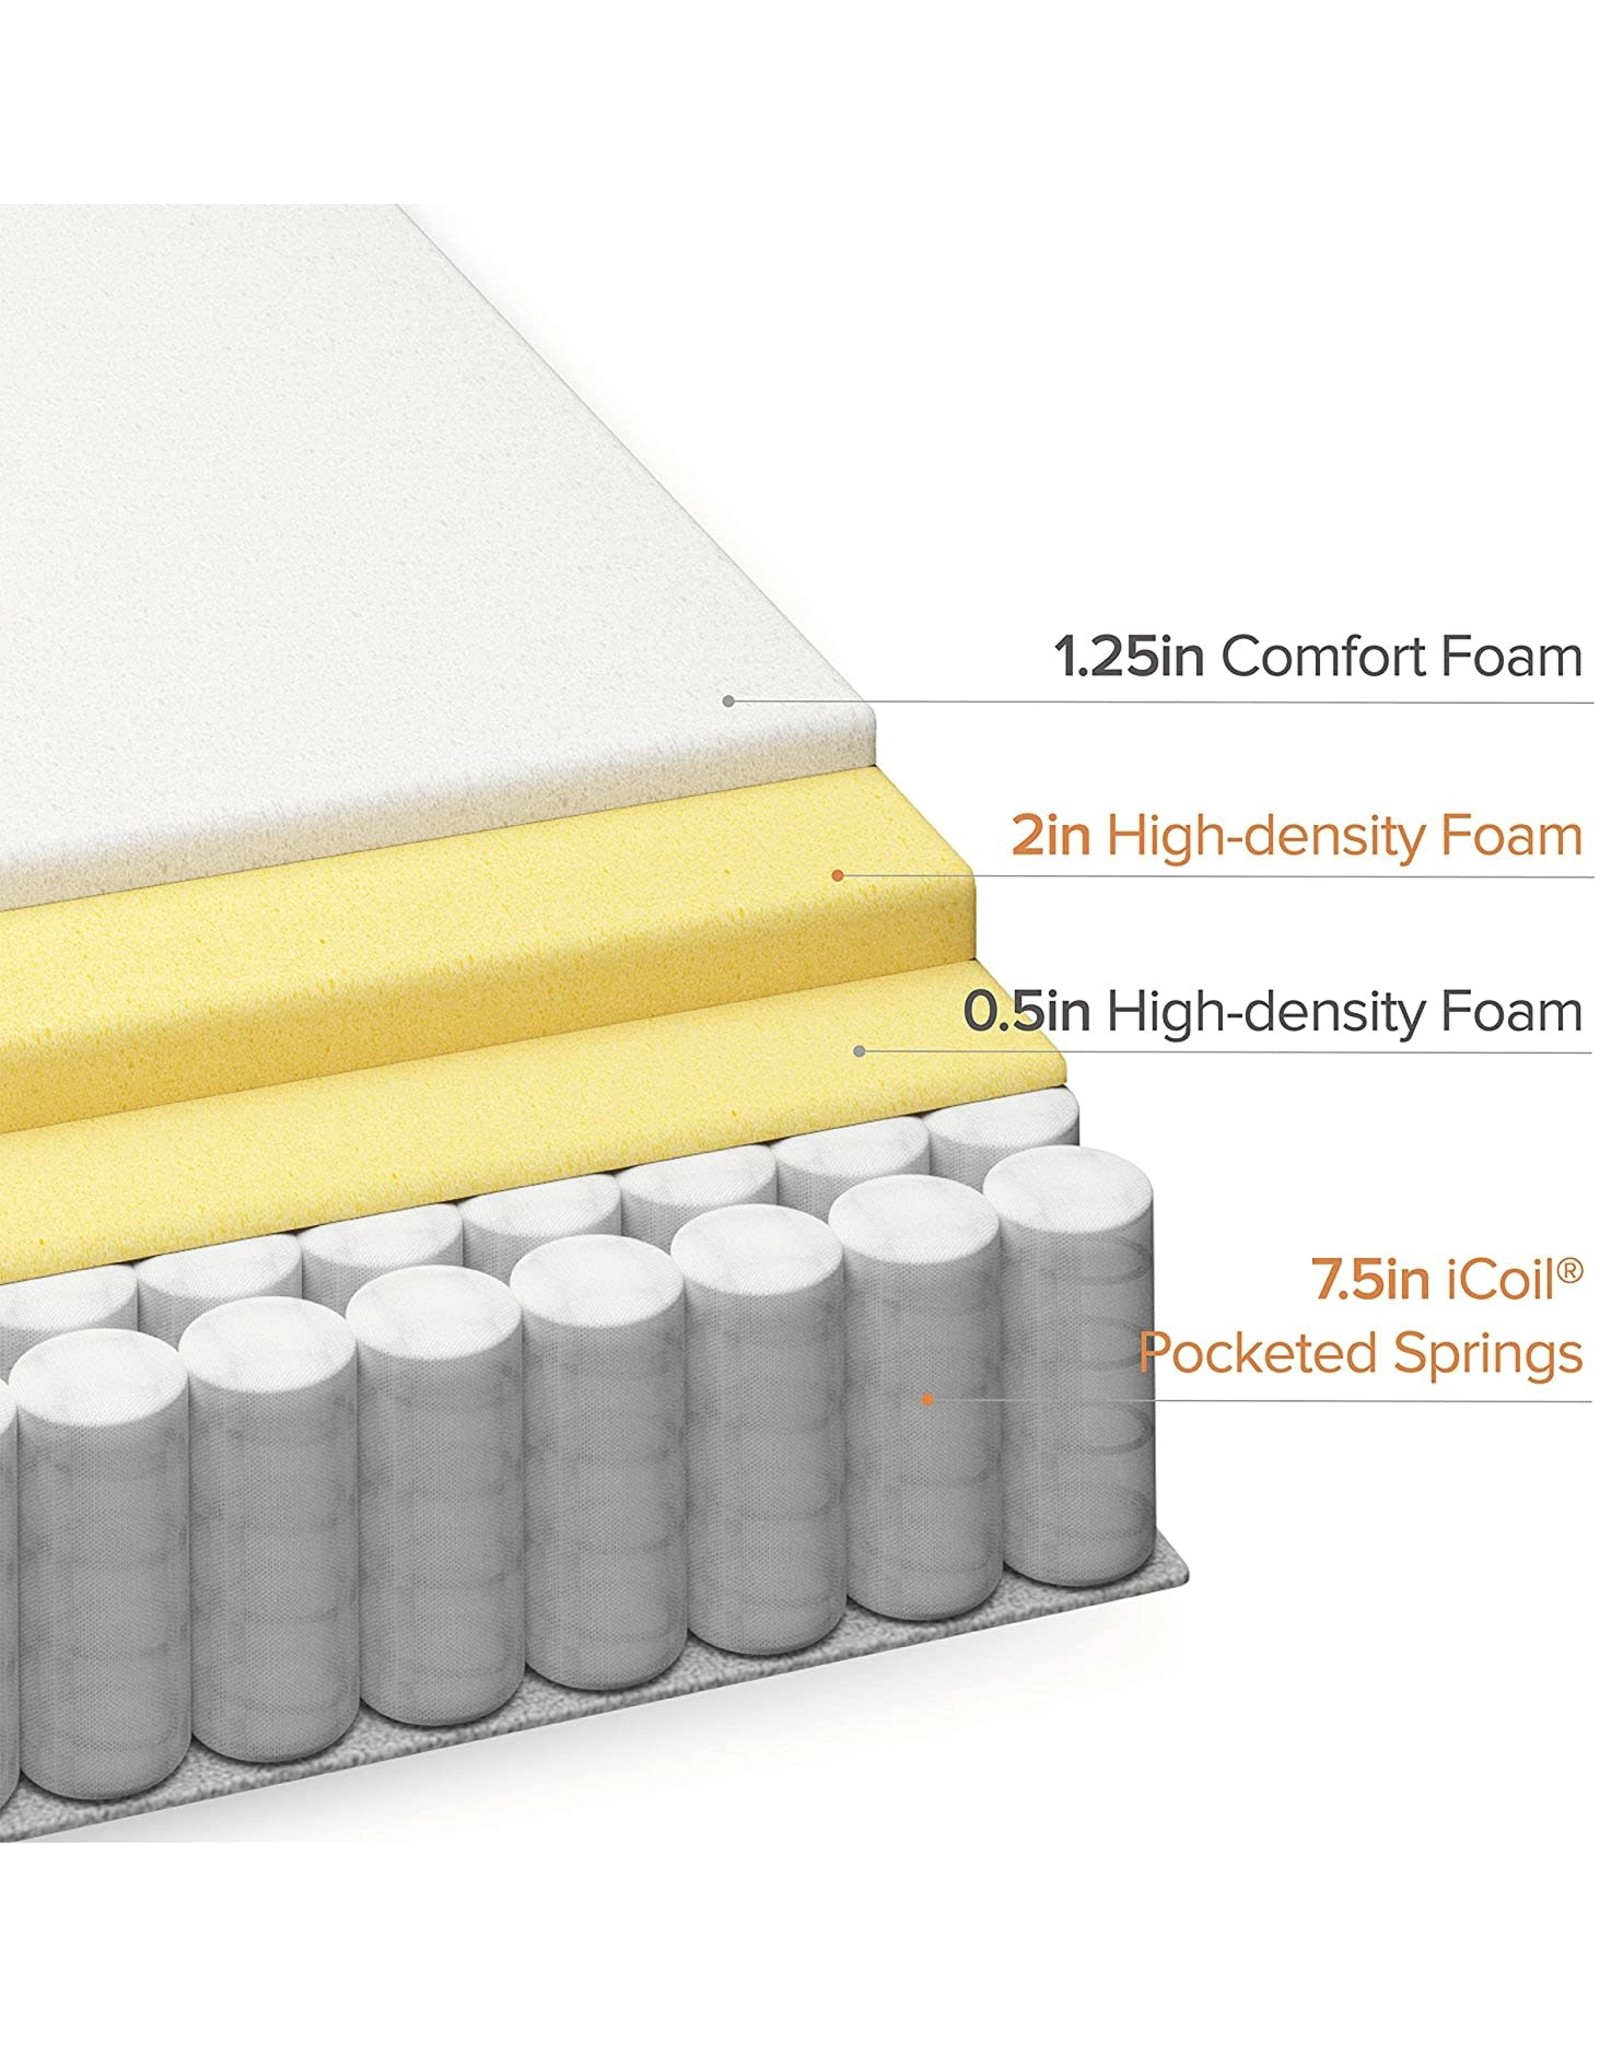 Zinus 12 Inch Euro Top Pocket Spring Hybrid Mattress / Pressure Relief / Pocket Innersprings for Motion Isolation / Bed-in-a-Box, California King